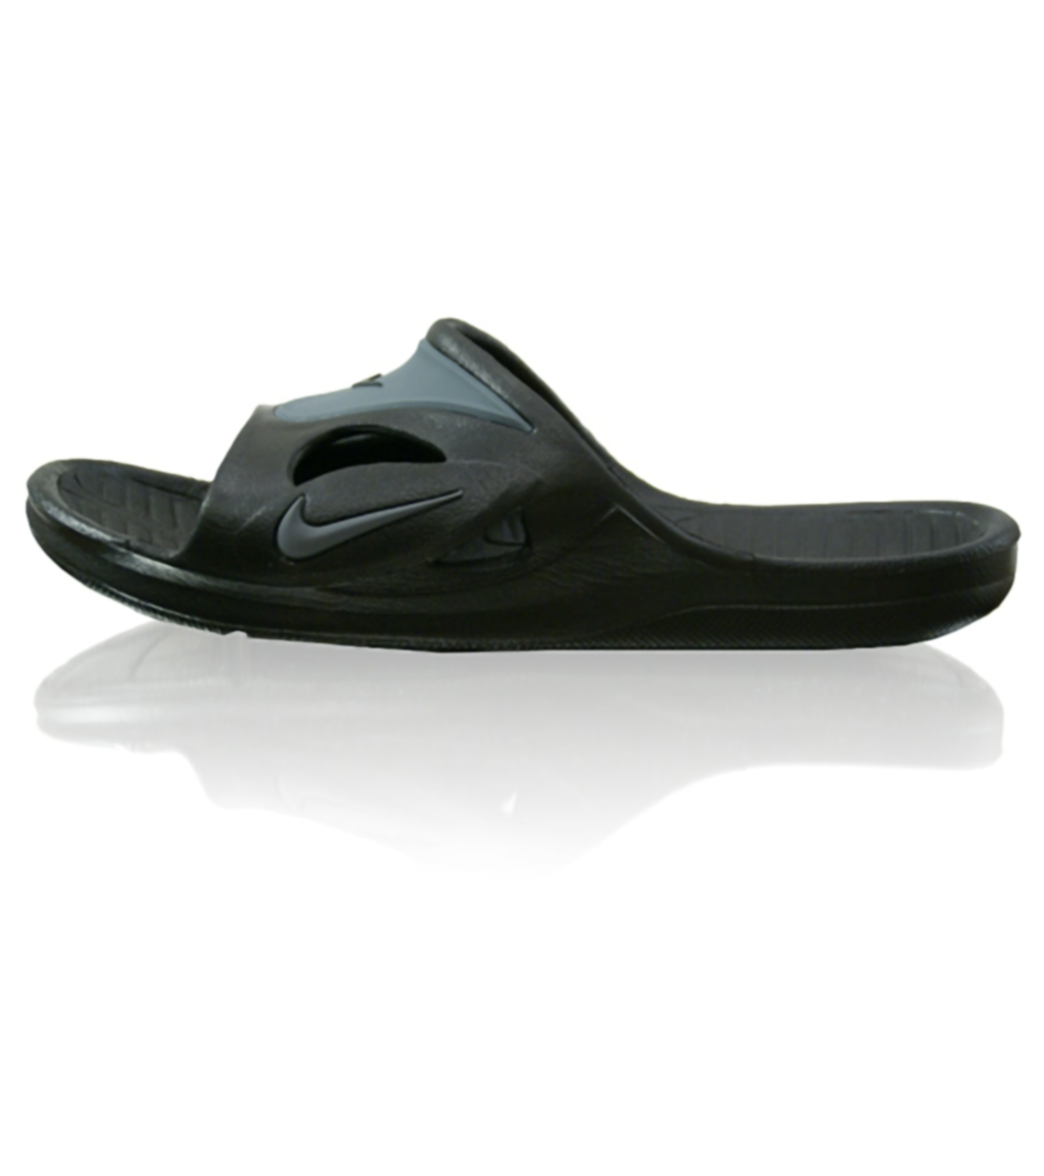 f7b3bf9fd0ad Nike Swim Men s First String Slide Sandals at SwimOutlet.com